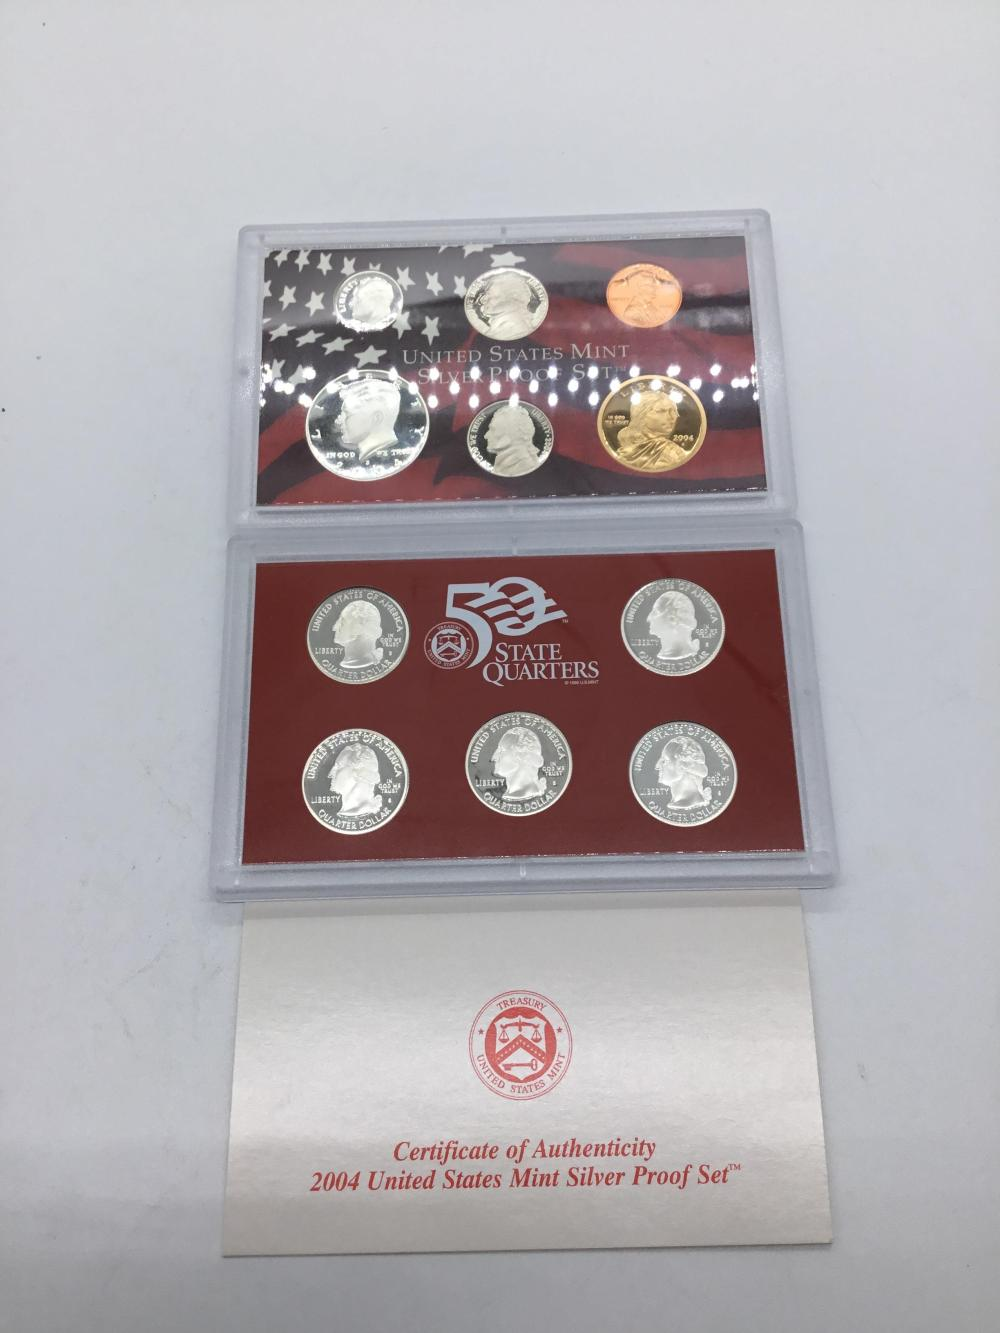 United States silver proof set